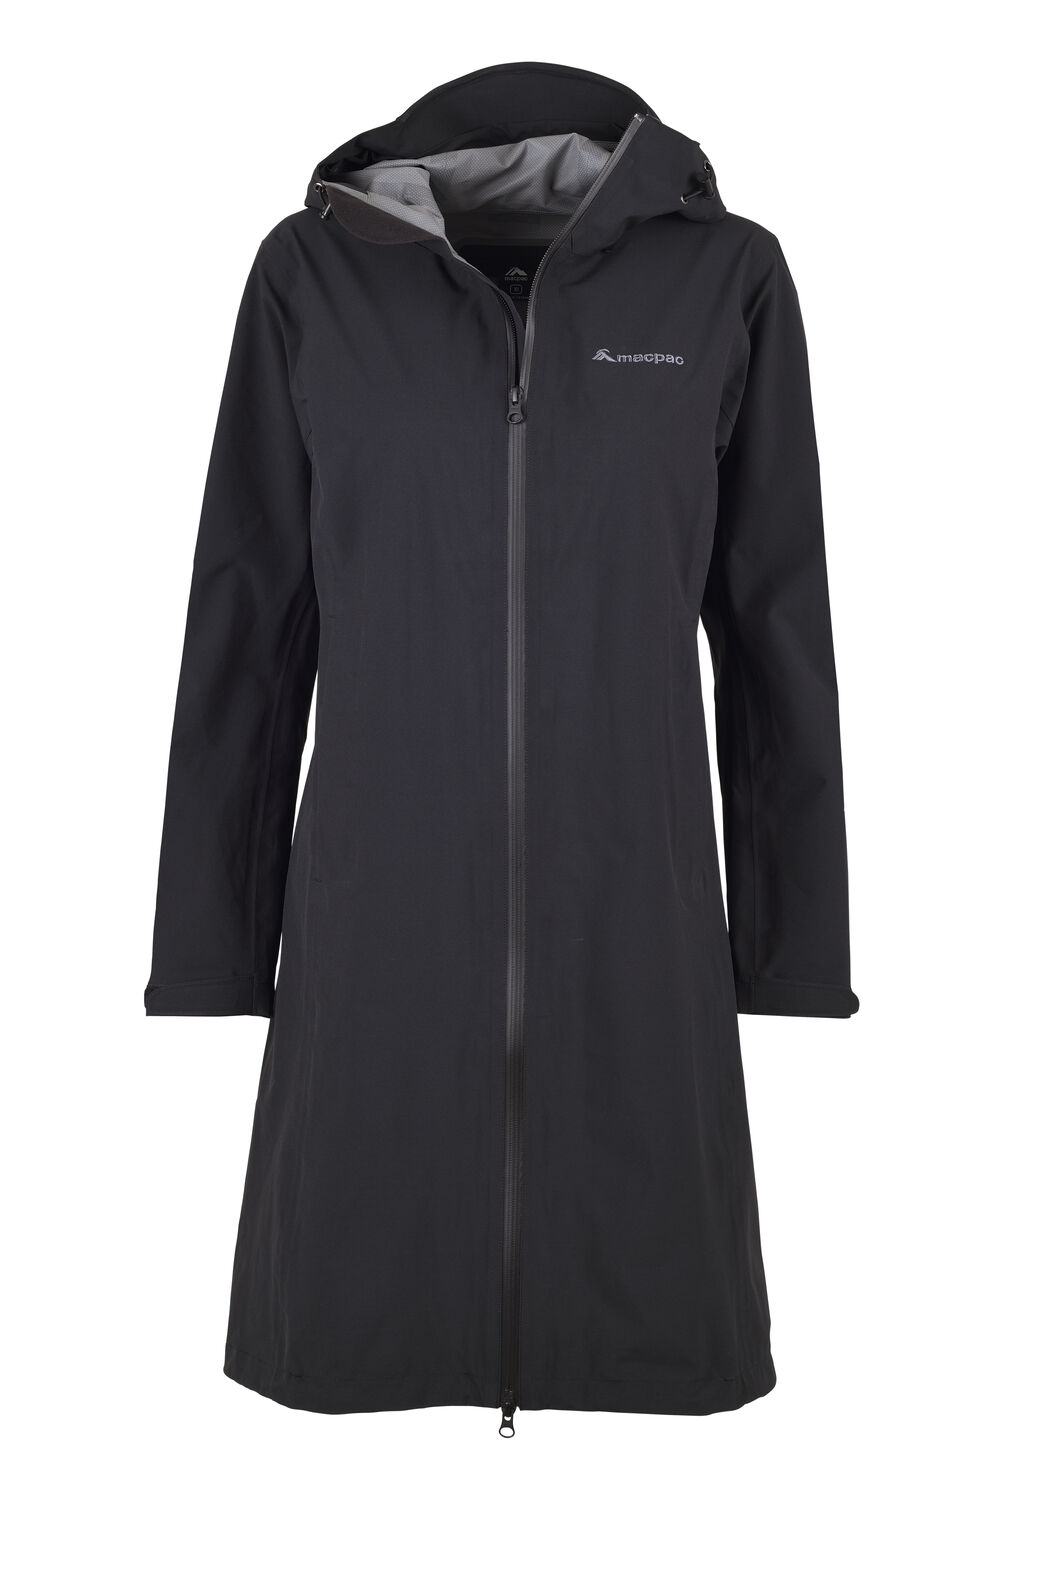 Macpac Dispatch Rain Coat — Women's, Black, hi-res